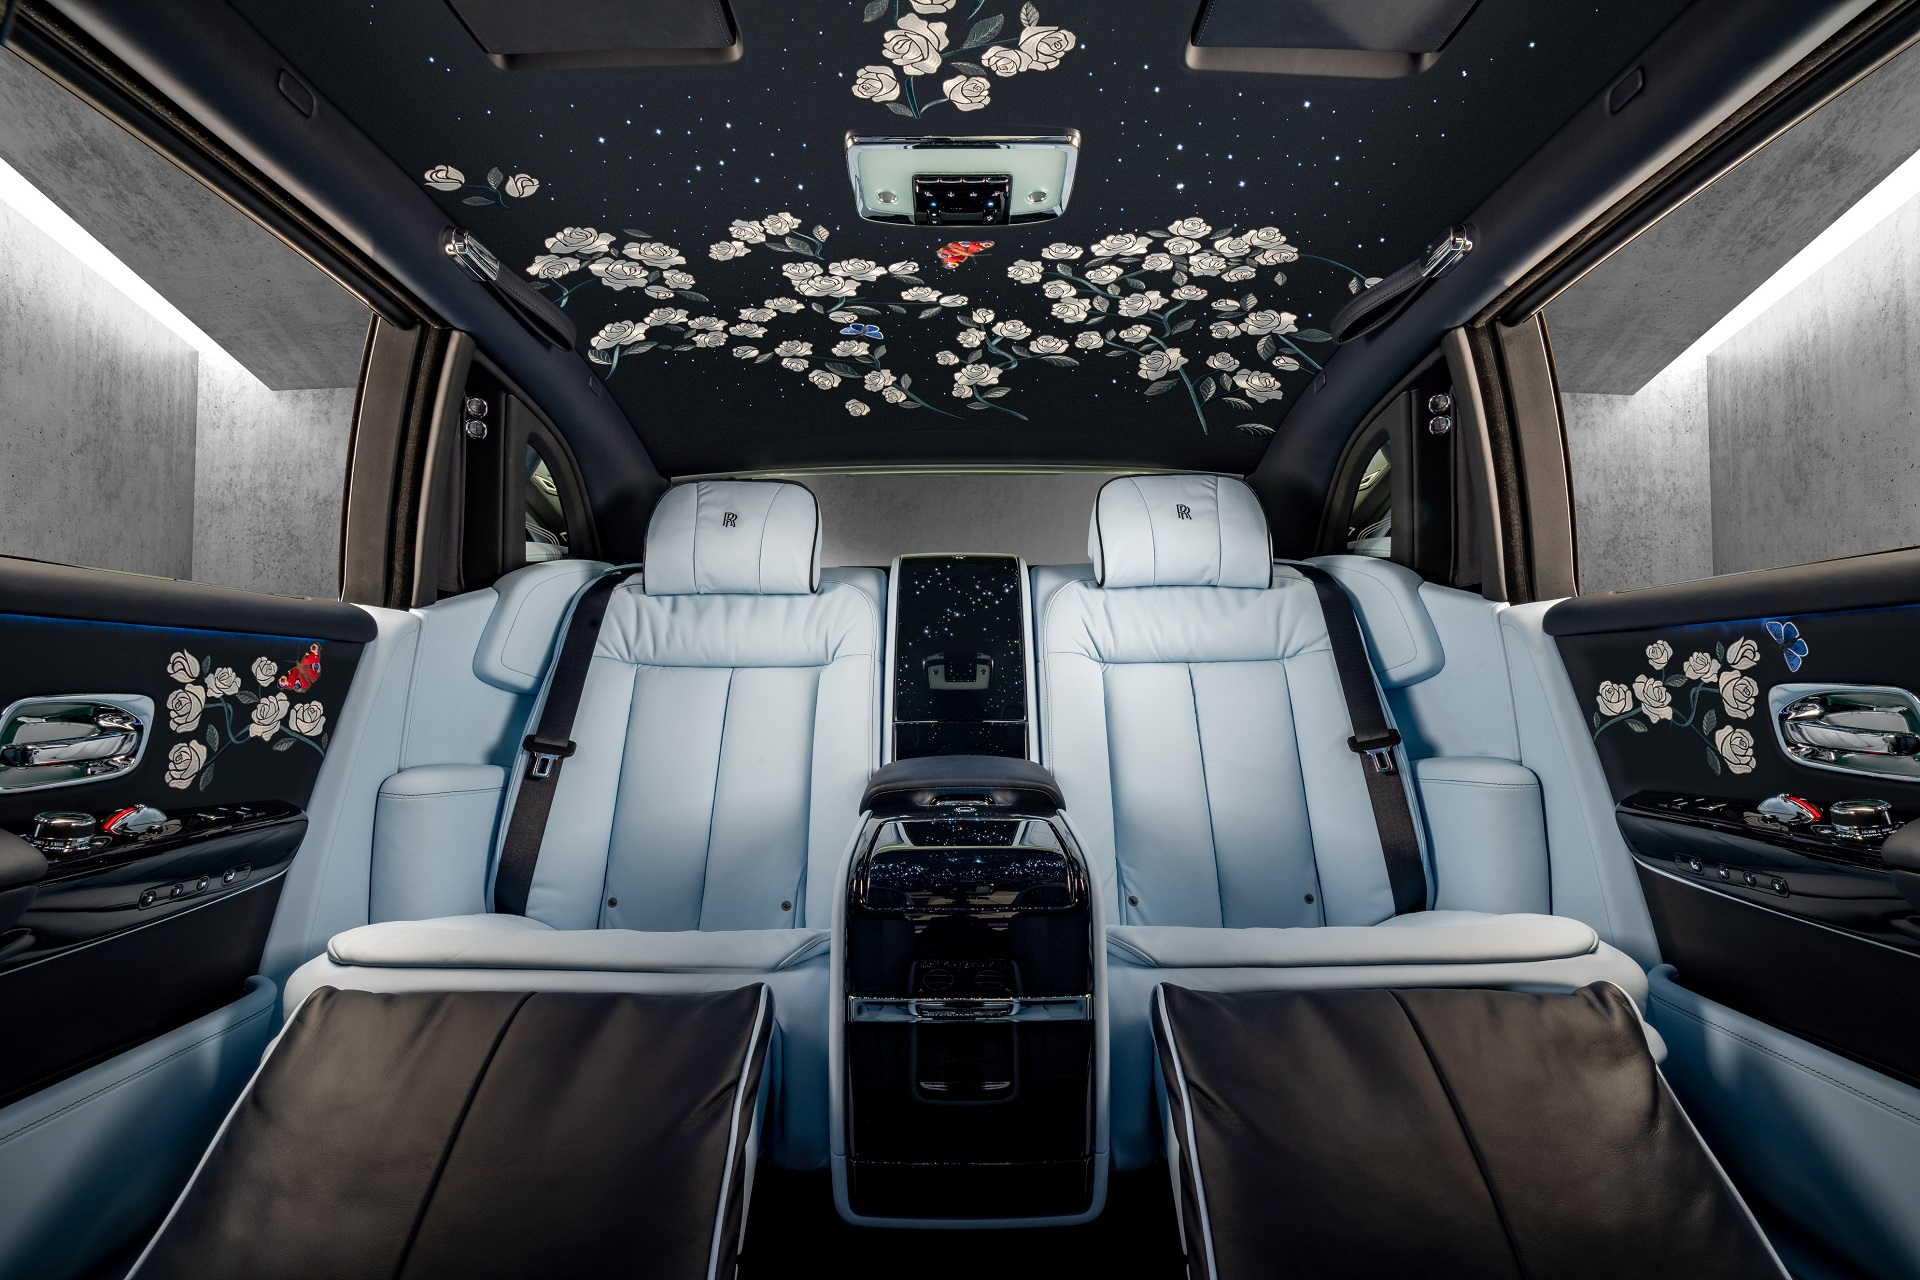 Million Stitch Rolls Royce Phantom 1